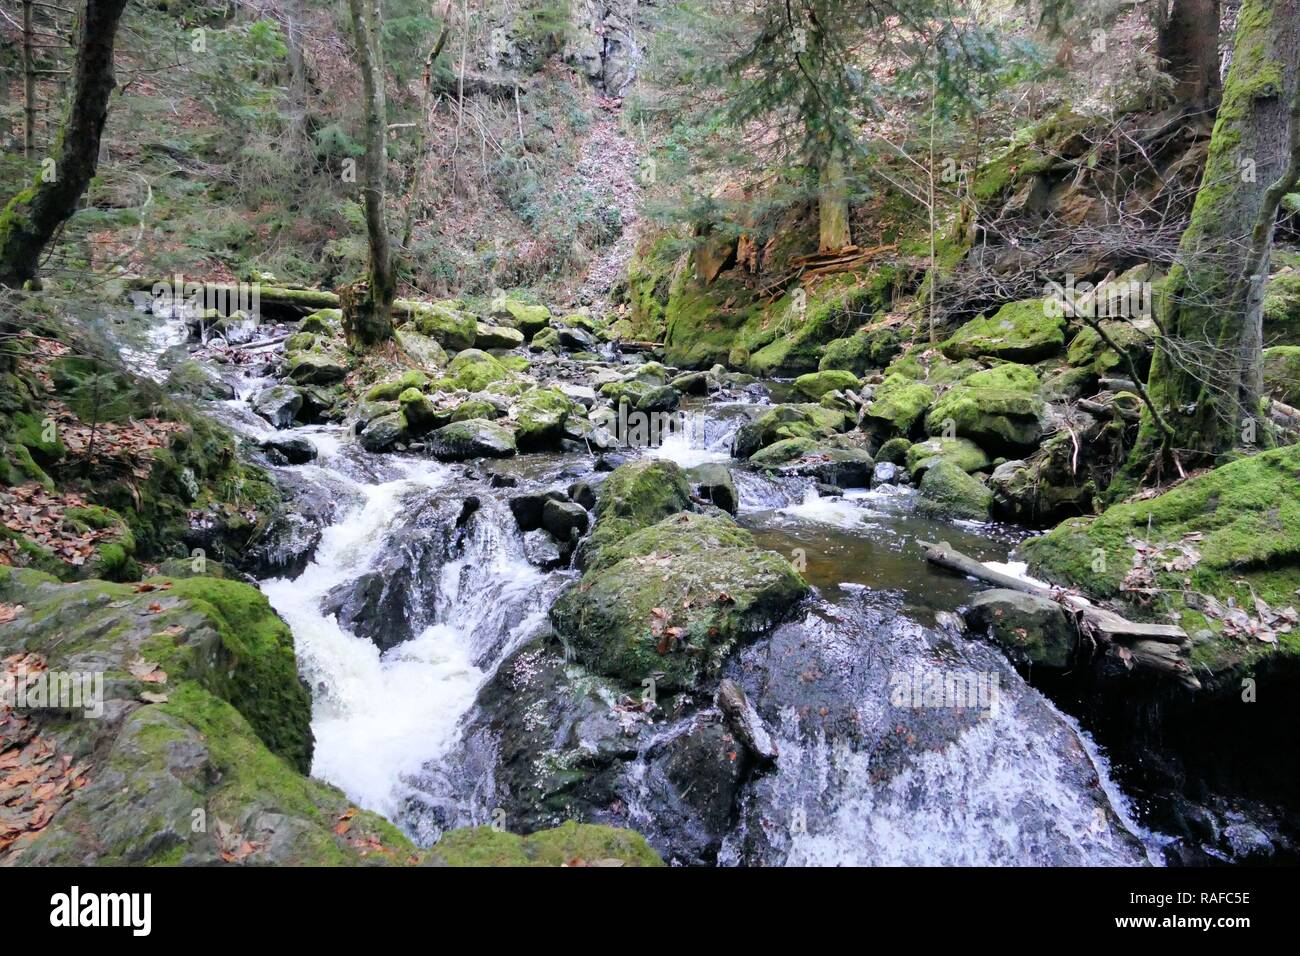 Raging Black Forest Stream - Stock Image